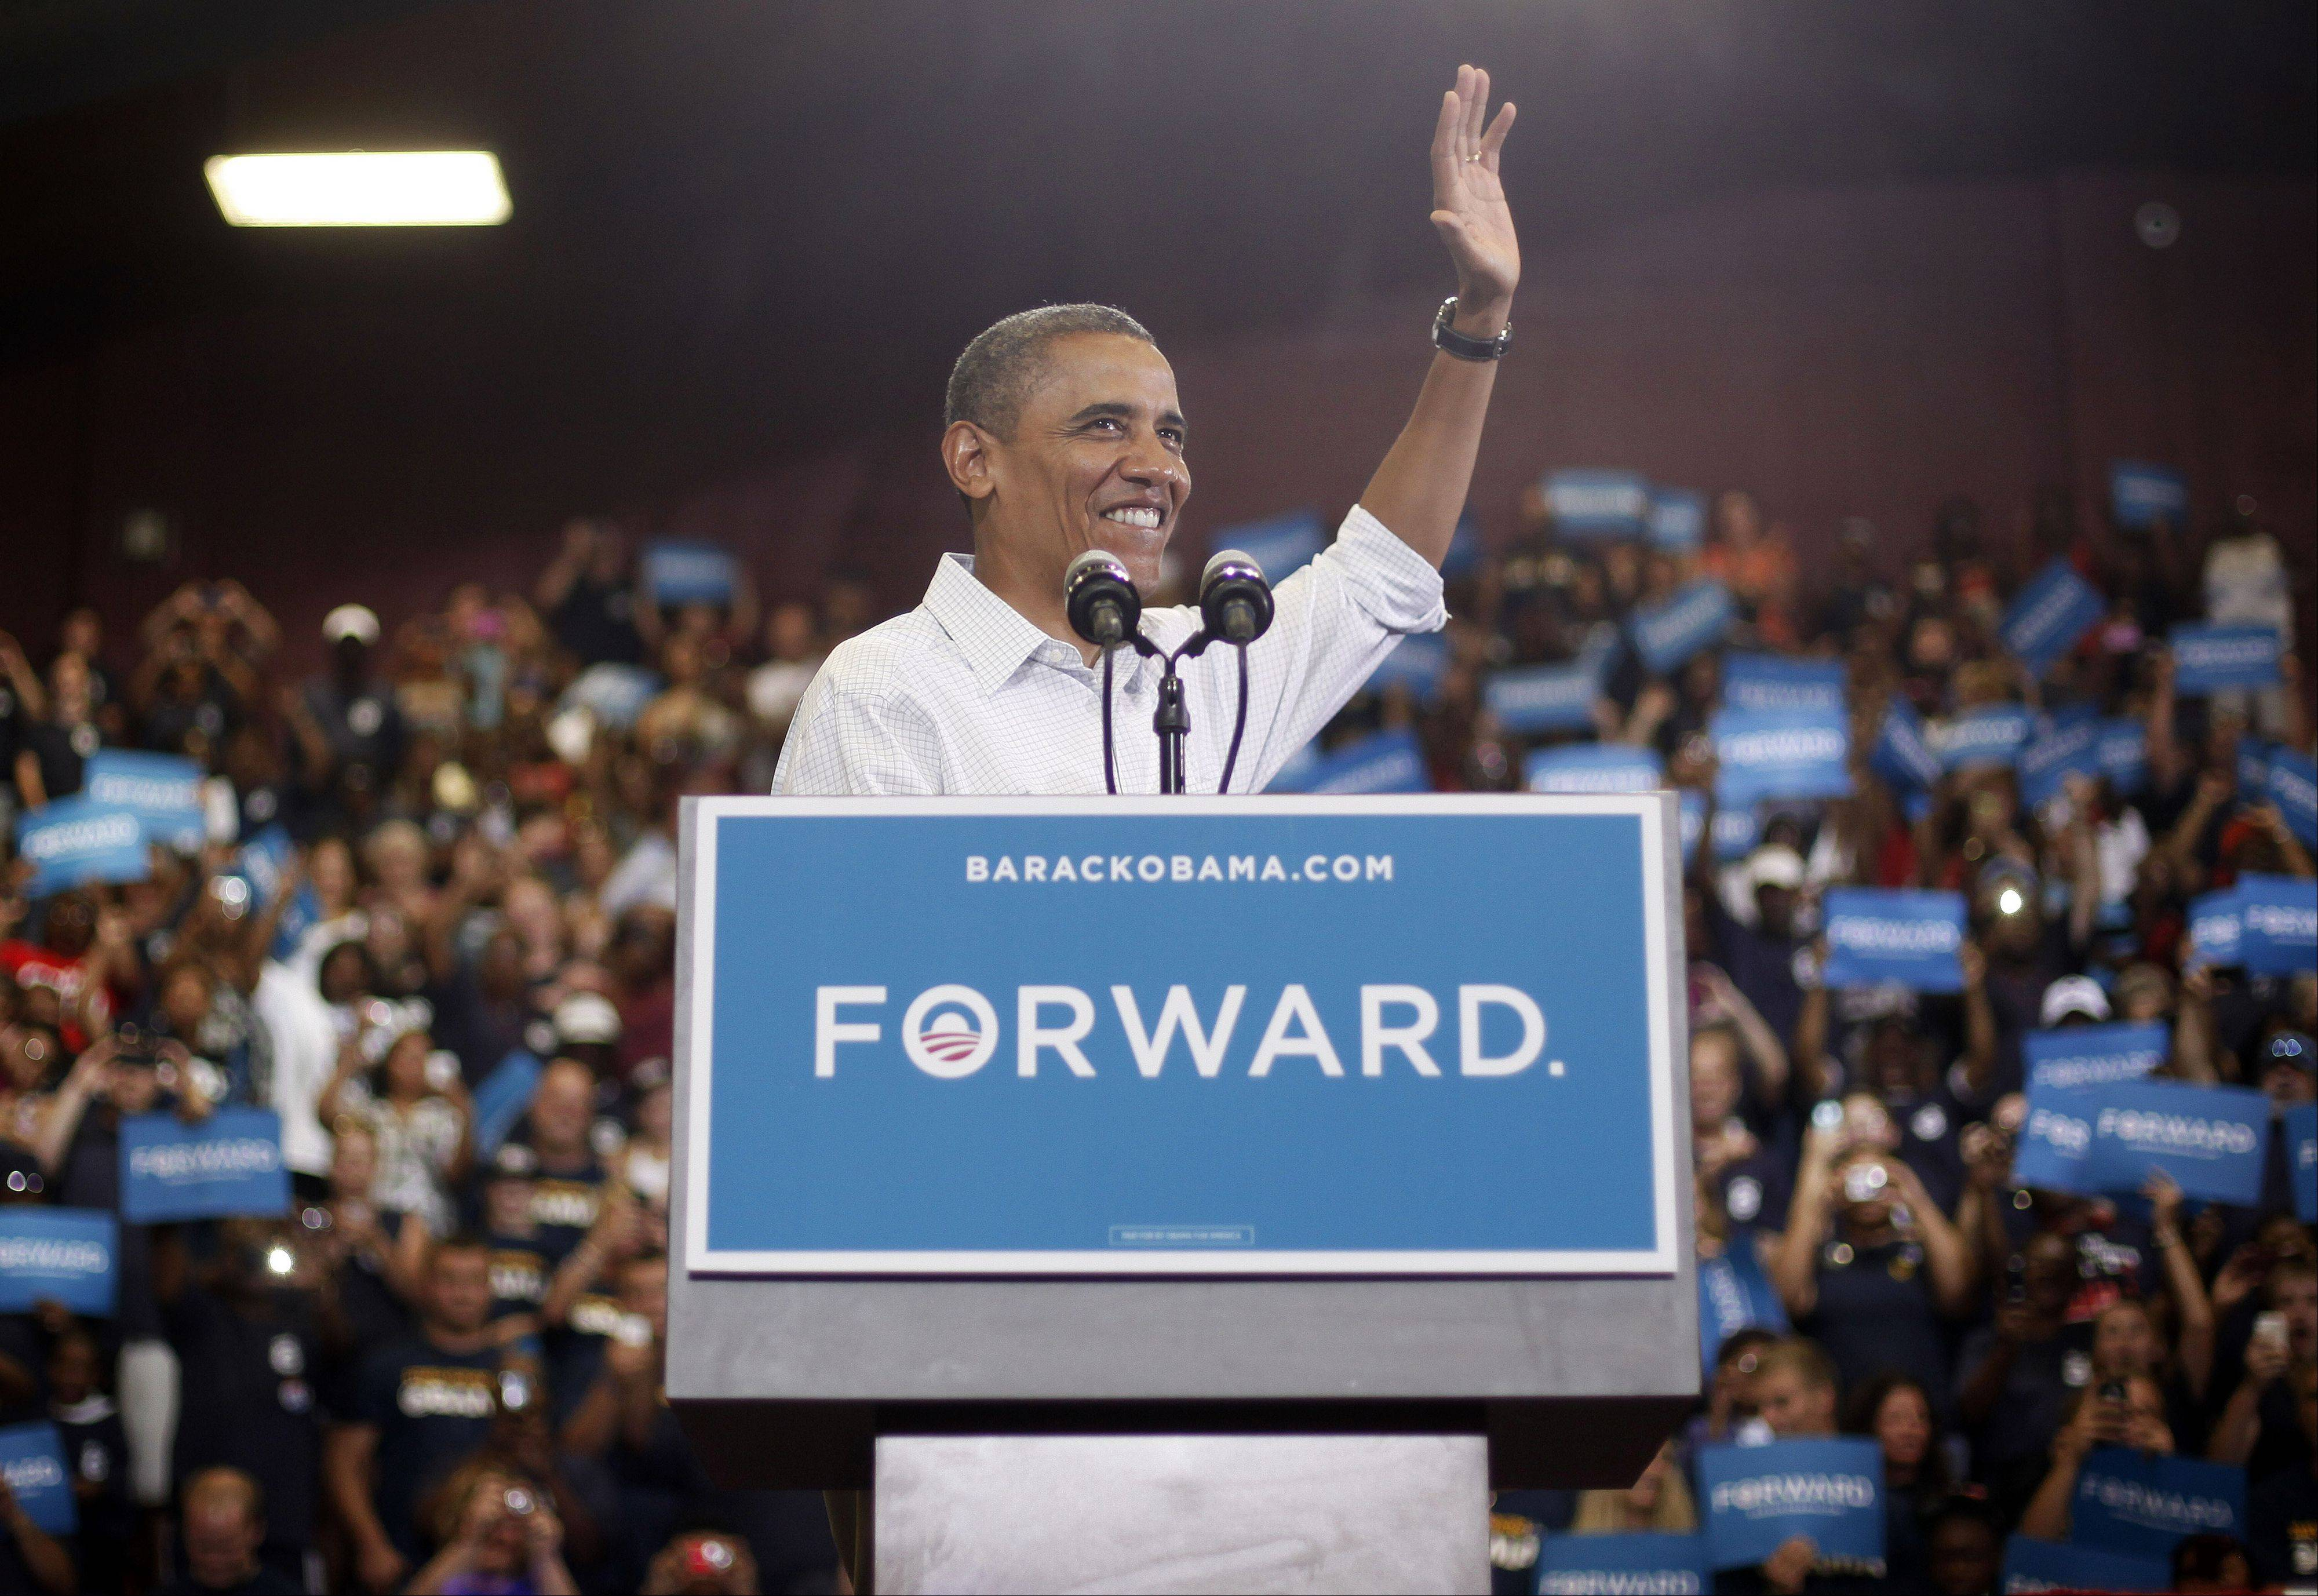 President Barack Obama speaks during a campaign event at Scott High School, Monday, in Toledo, Ohio.